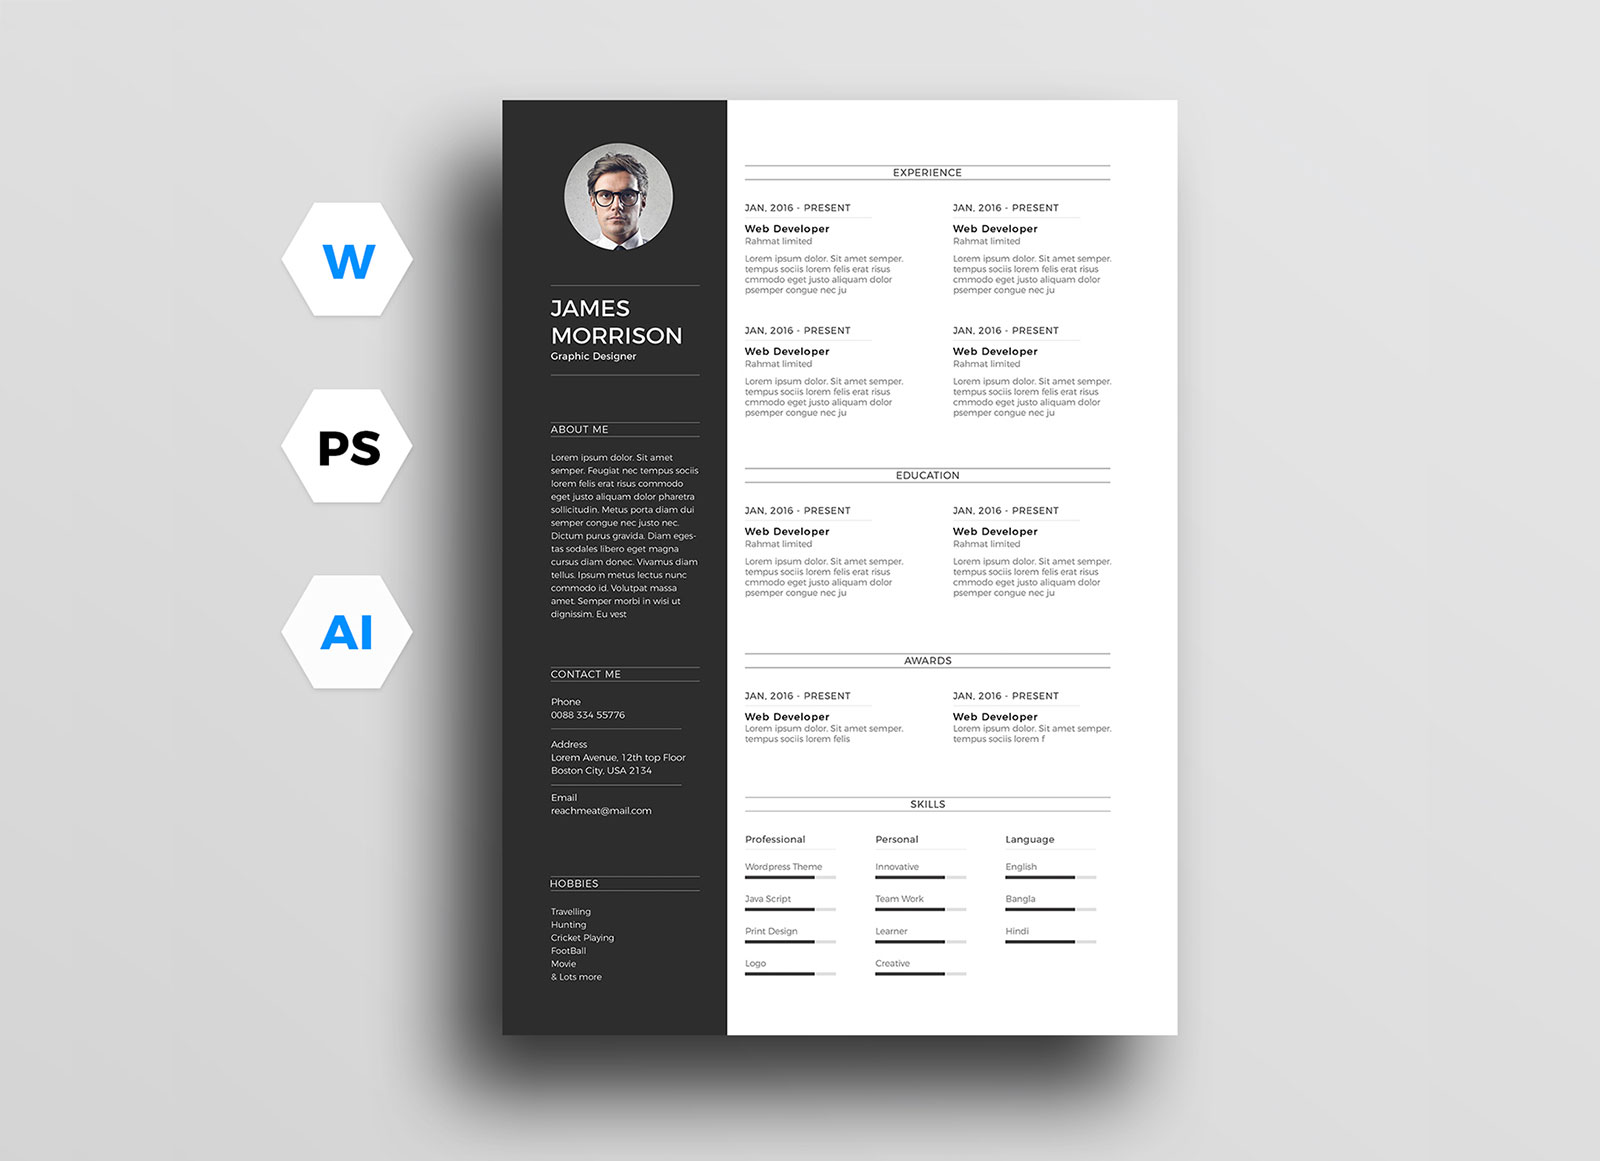 Free-Minimal-CV-Resume-Template-in-Word-Ai-&-PSD (2)